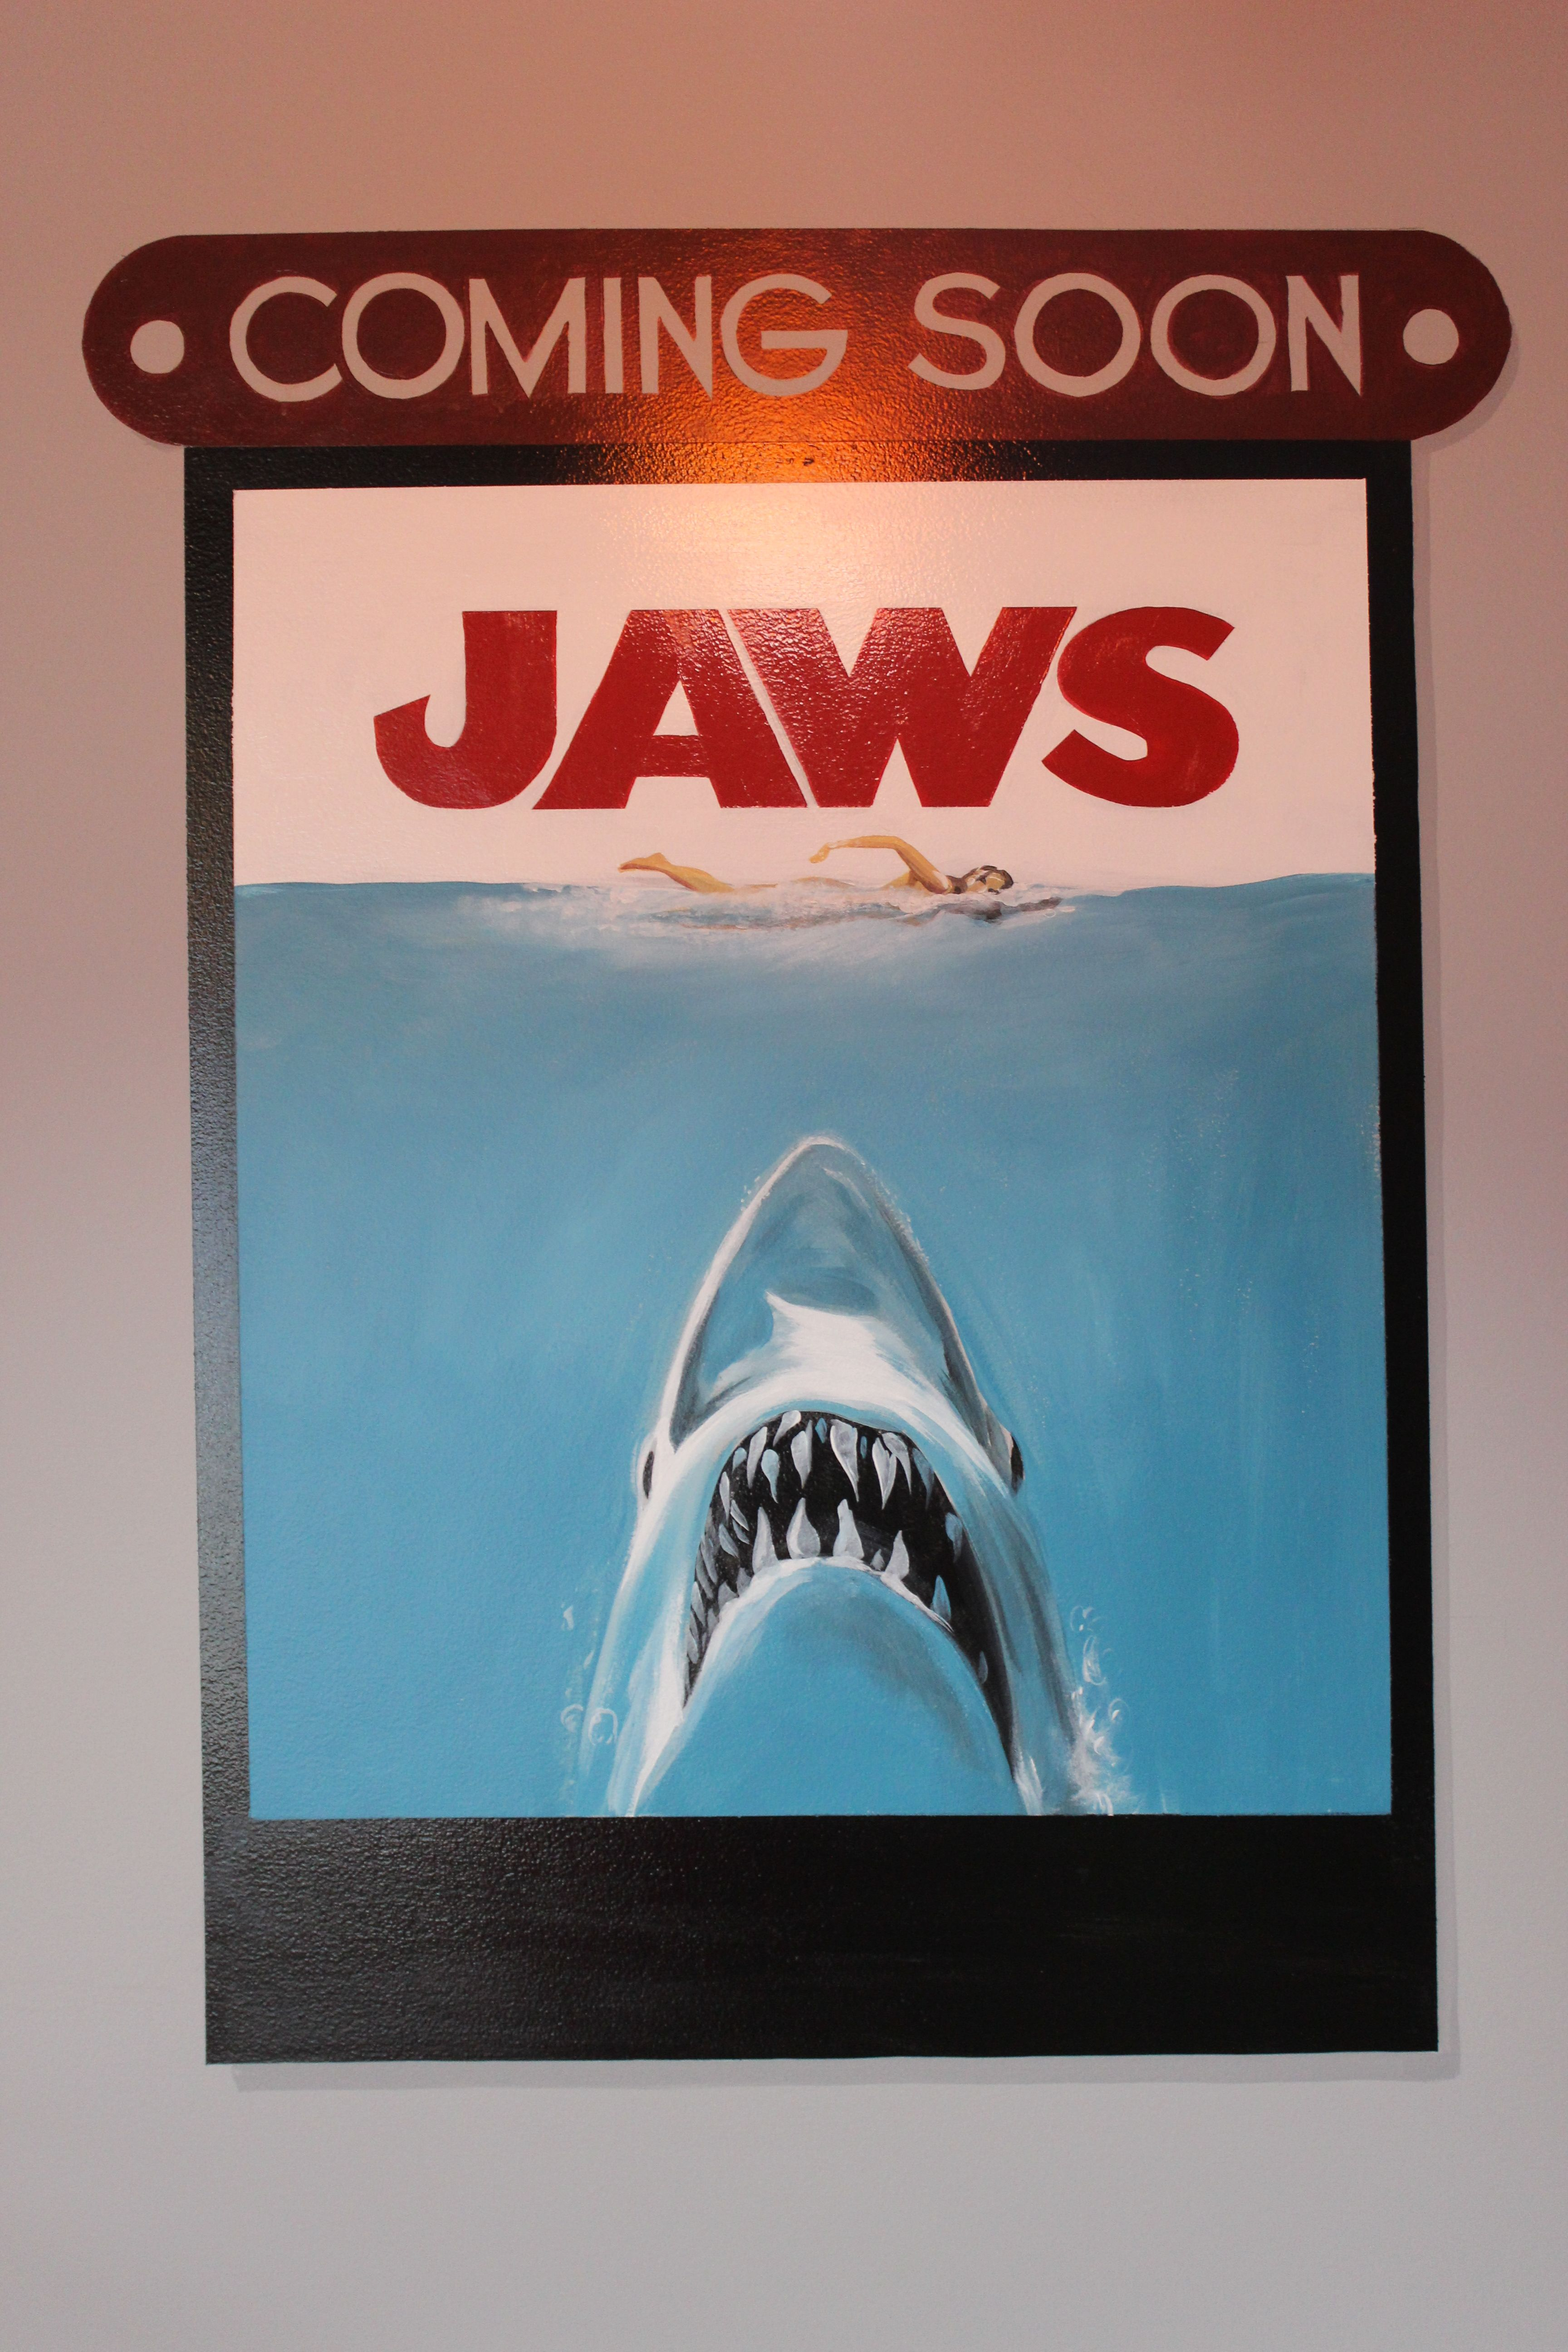 Jaws Mural Art Mural Broadway Shows Broadway Show Signs